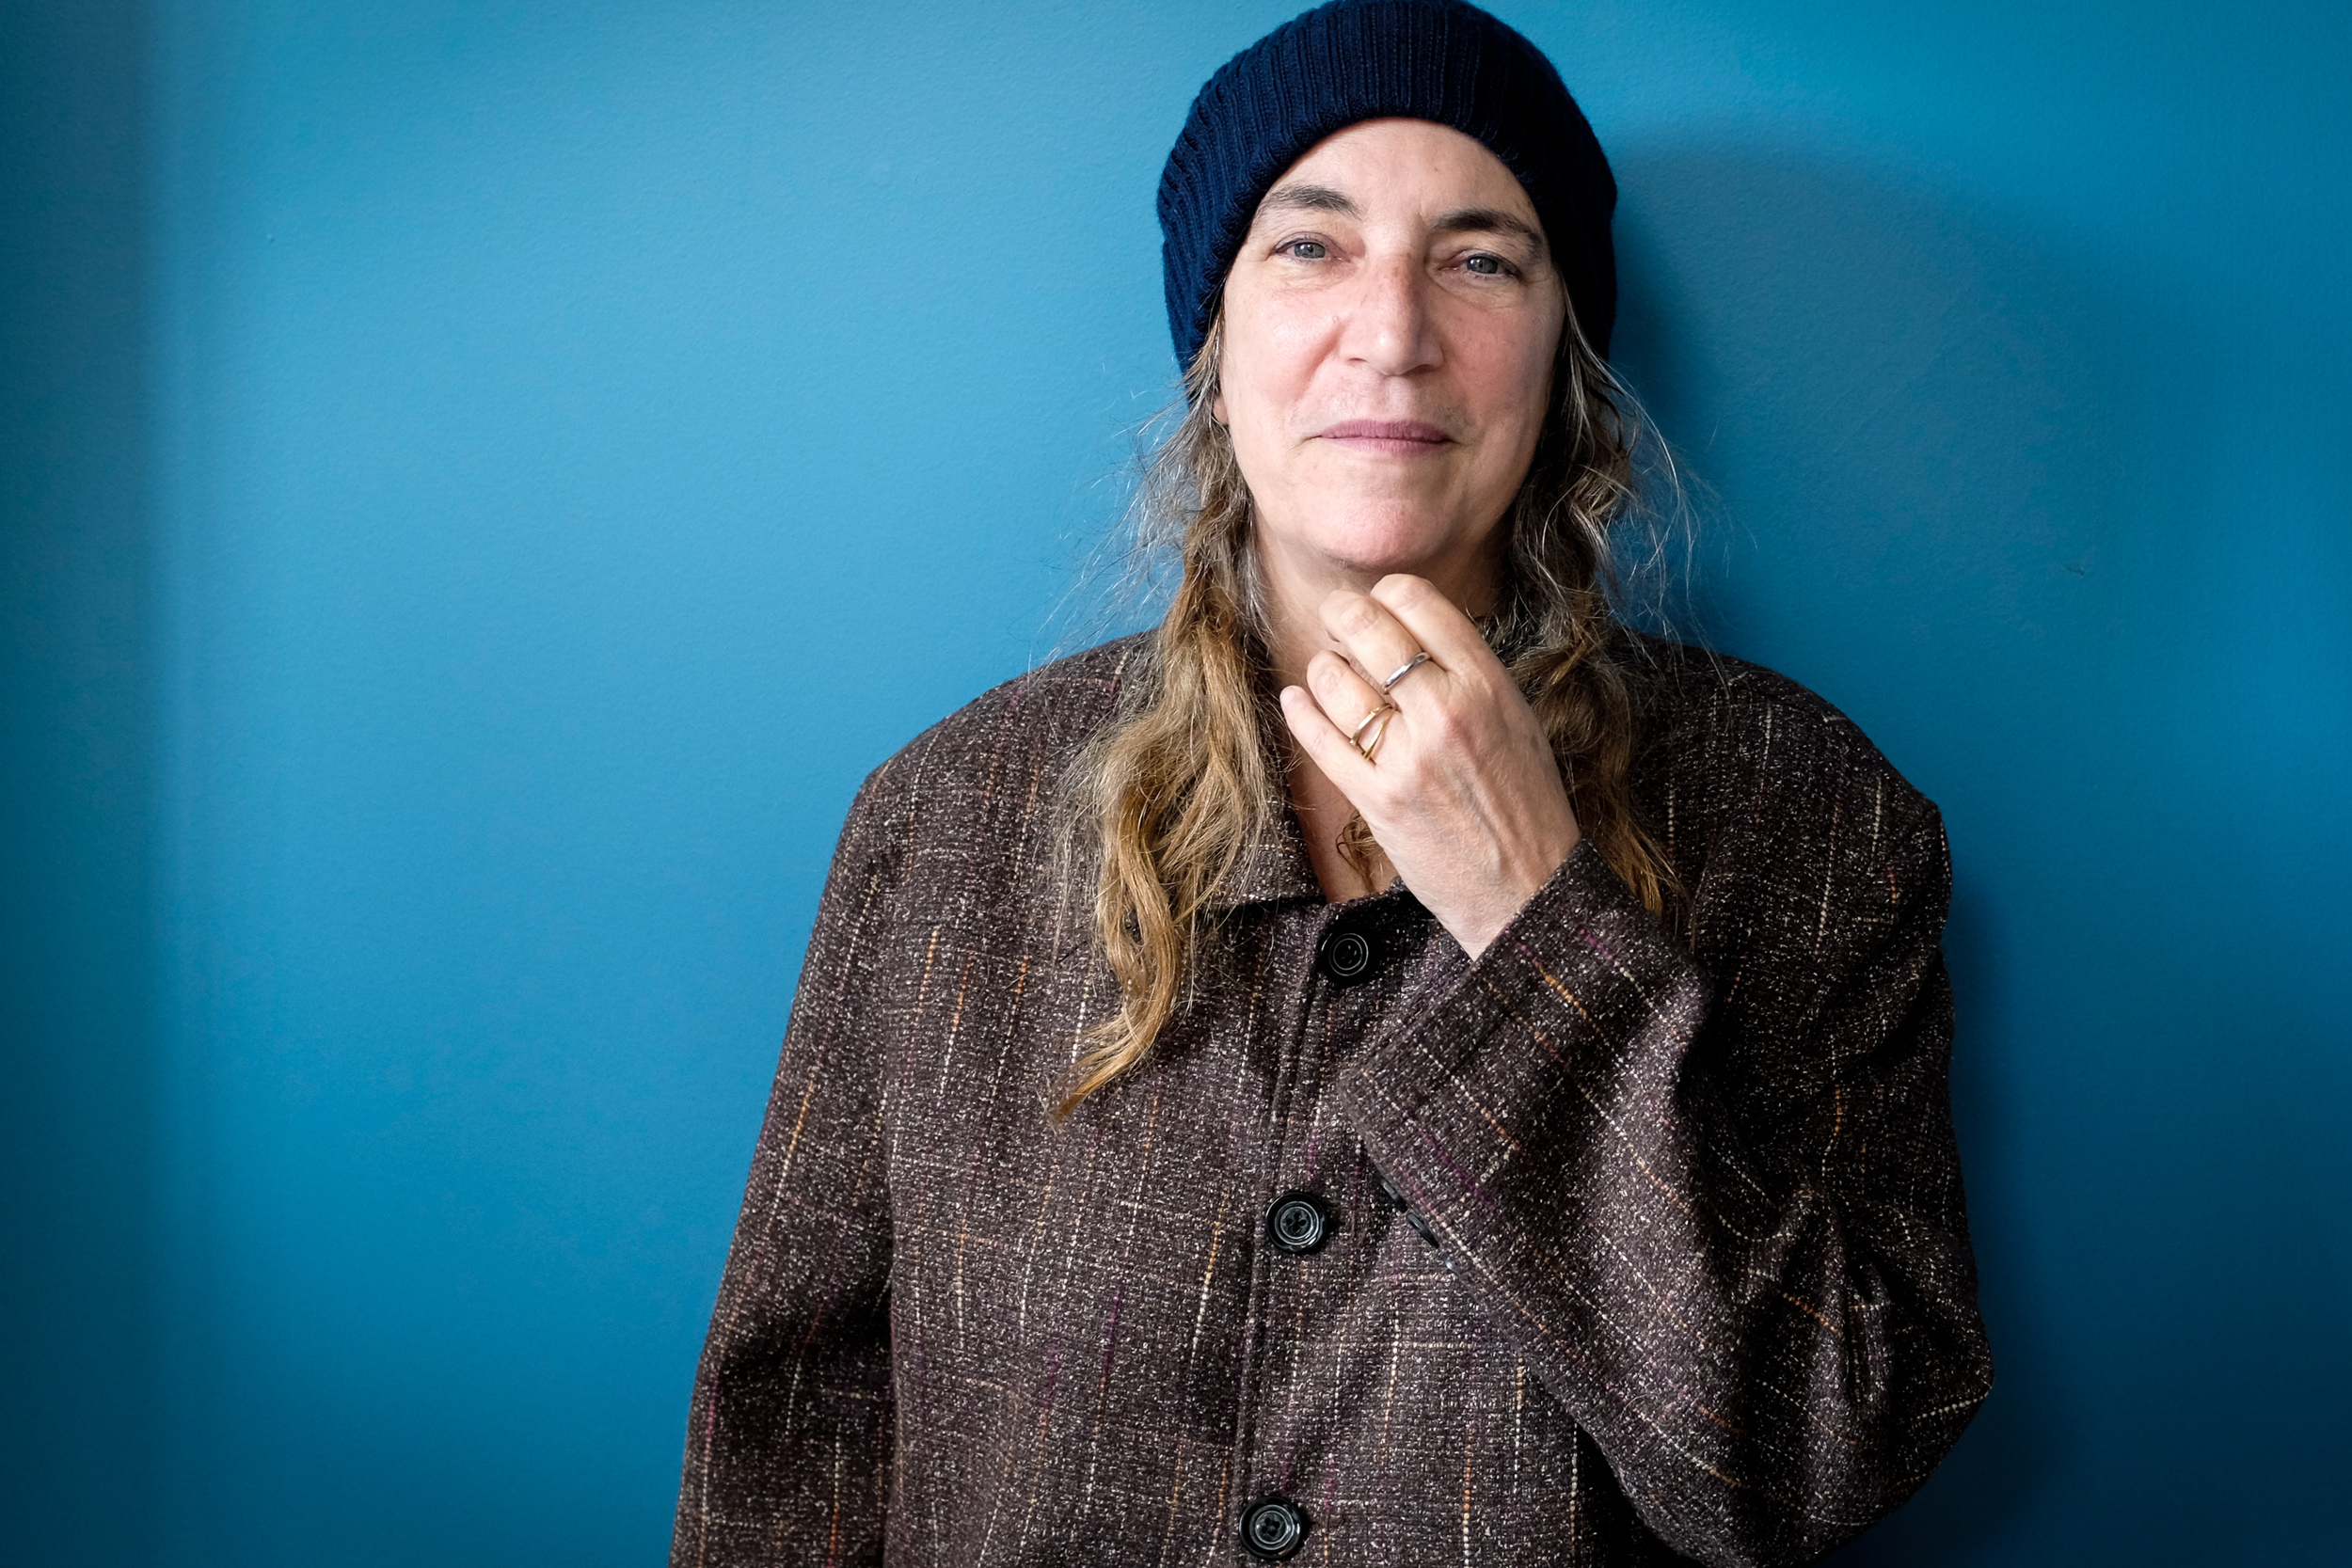 Patti Smith at The Current's Studios. September 12th, 2013.